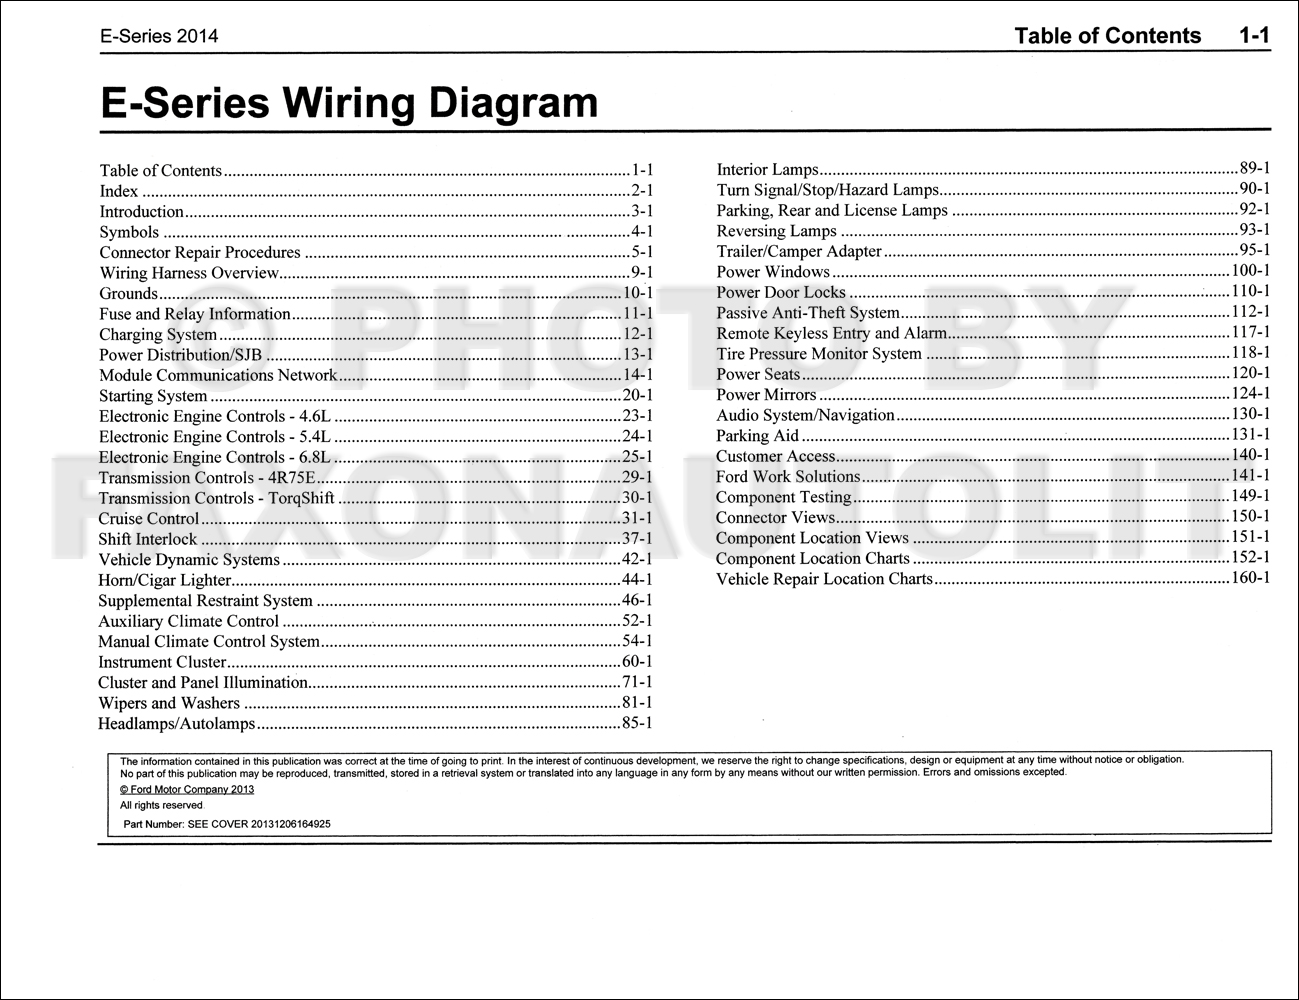 2014 Ford E 250 Wiring Diagram Modern Design Of Diagrams For 2003 E250 Econoline Manual Original Van E150 Rh Faxonautoliterature Com Starter E350 Fuse